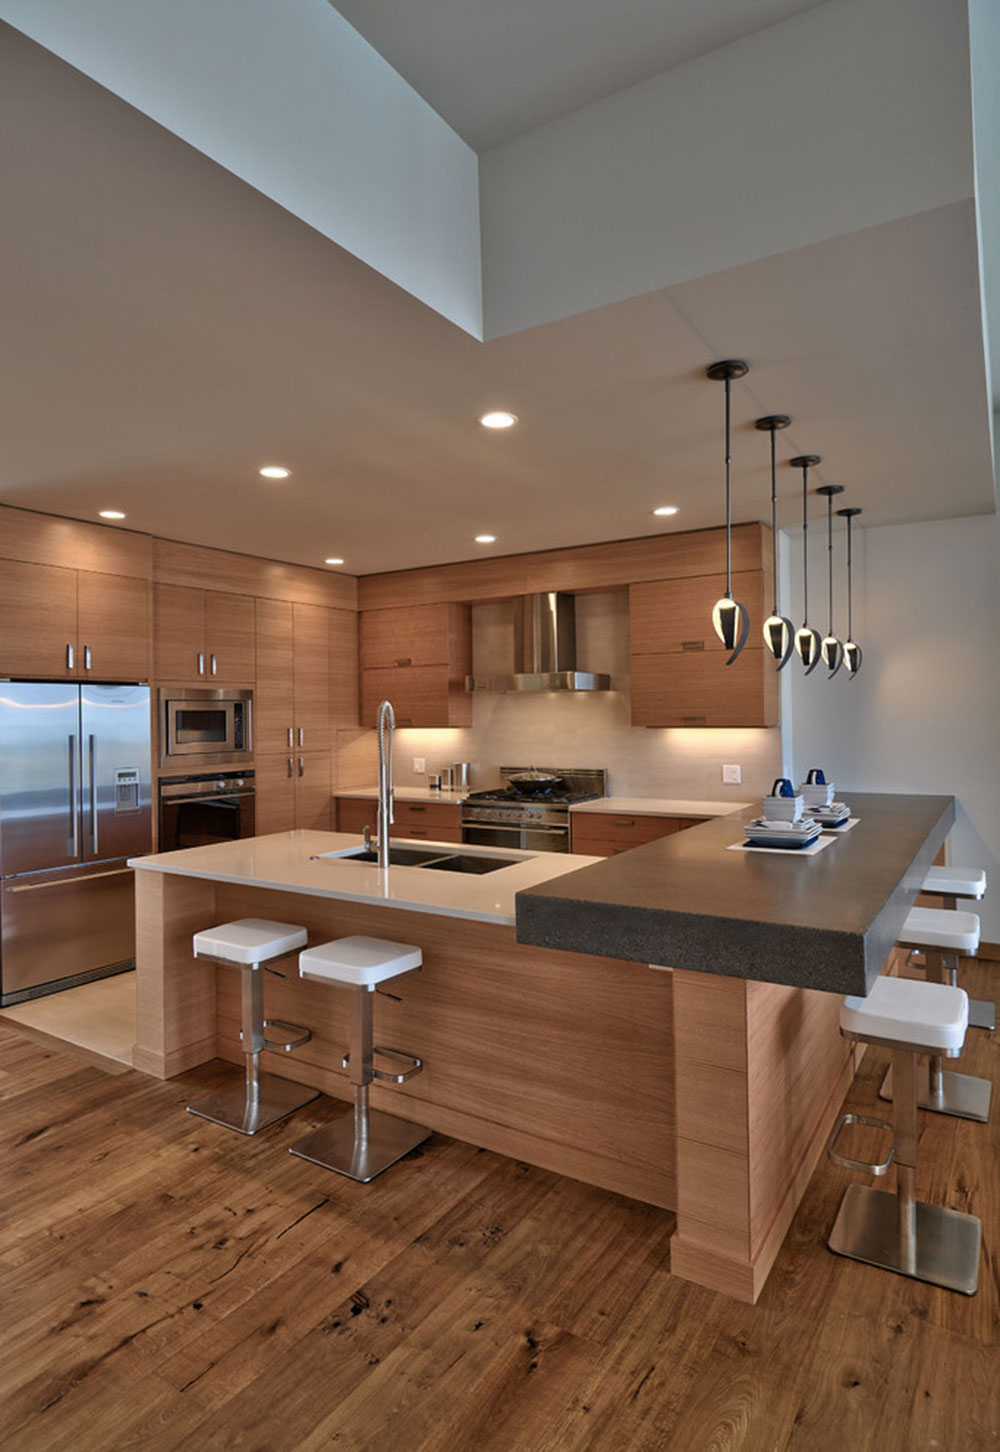 Good Kitchen Choosing Good Kitchen Furniture Could Be A Challenge